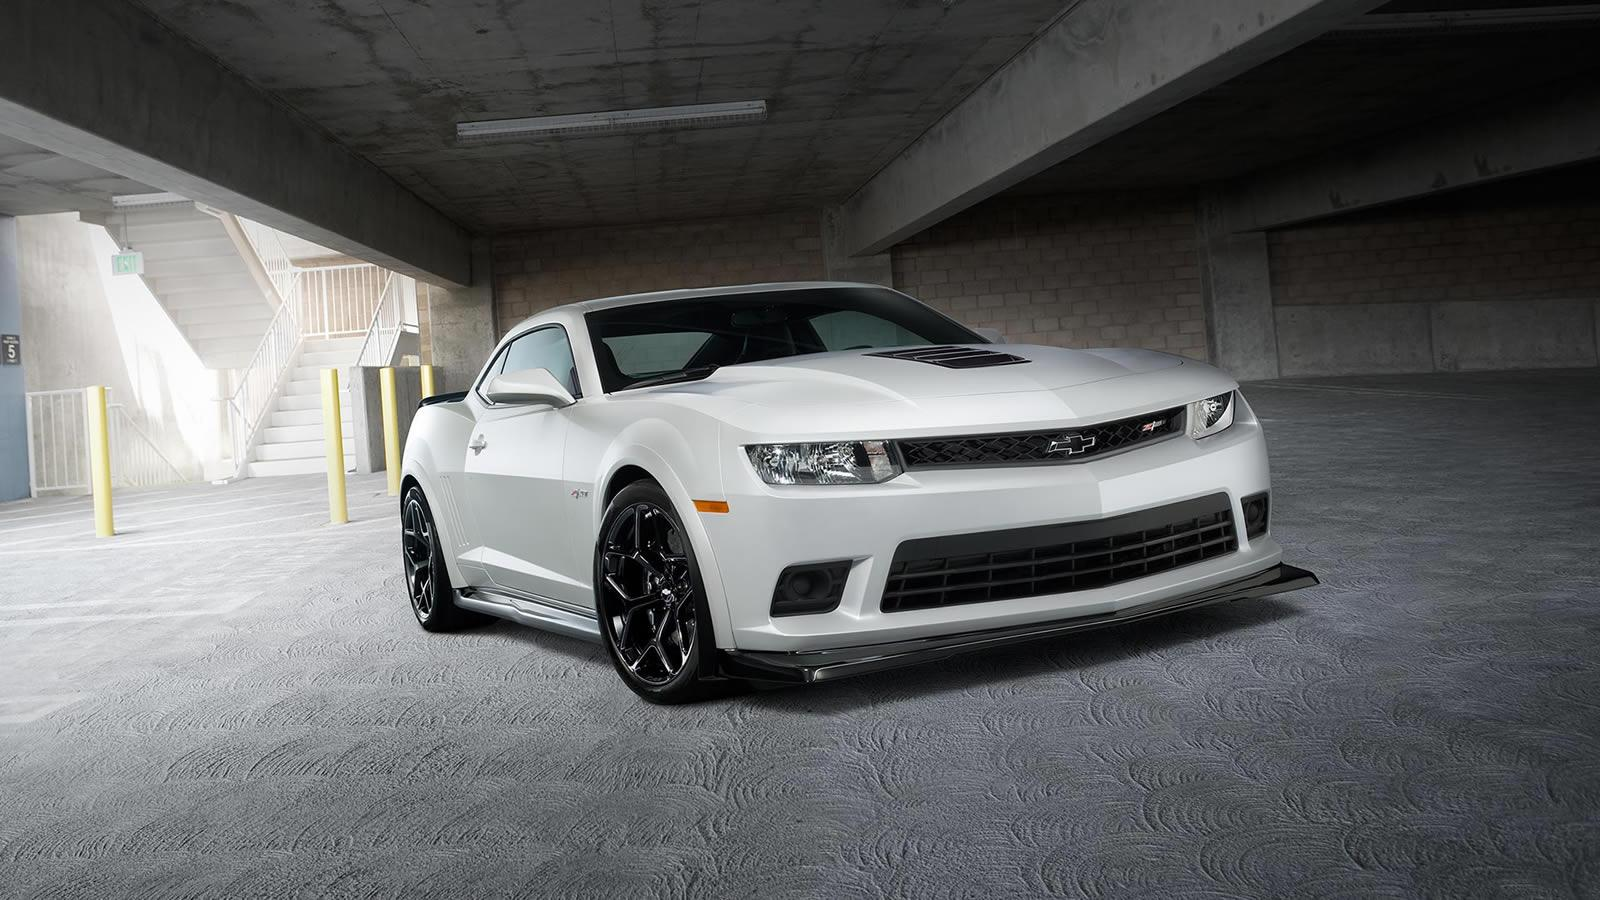 easy grab the 2015 chevrolet camaro z 28 price cut for 2 000 no car no fun muscle cars and. Black Bedroom Furniture Sets. Home Design Ideas